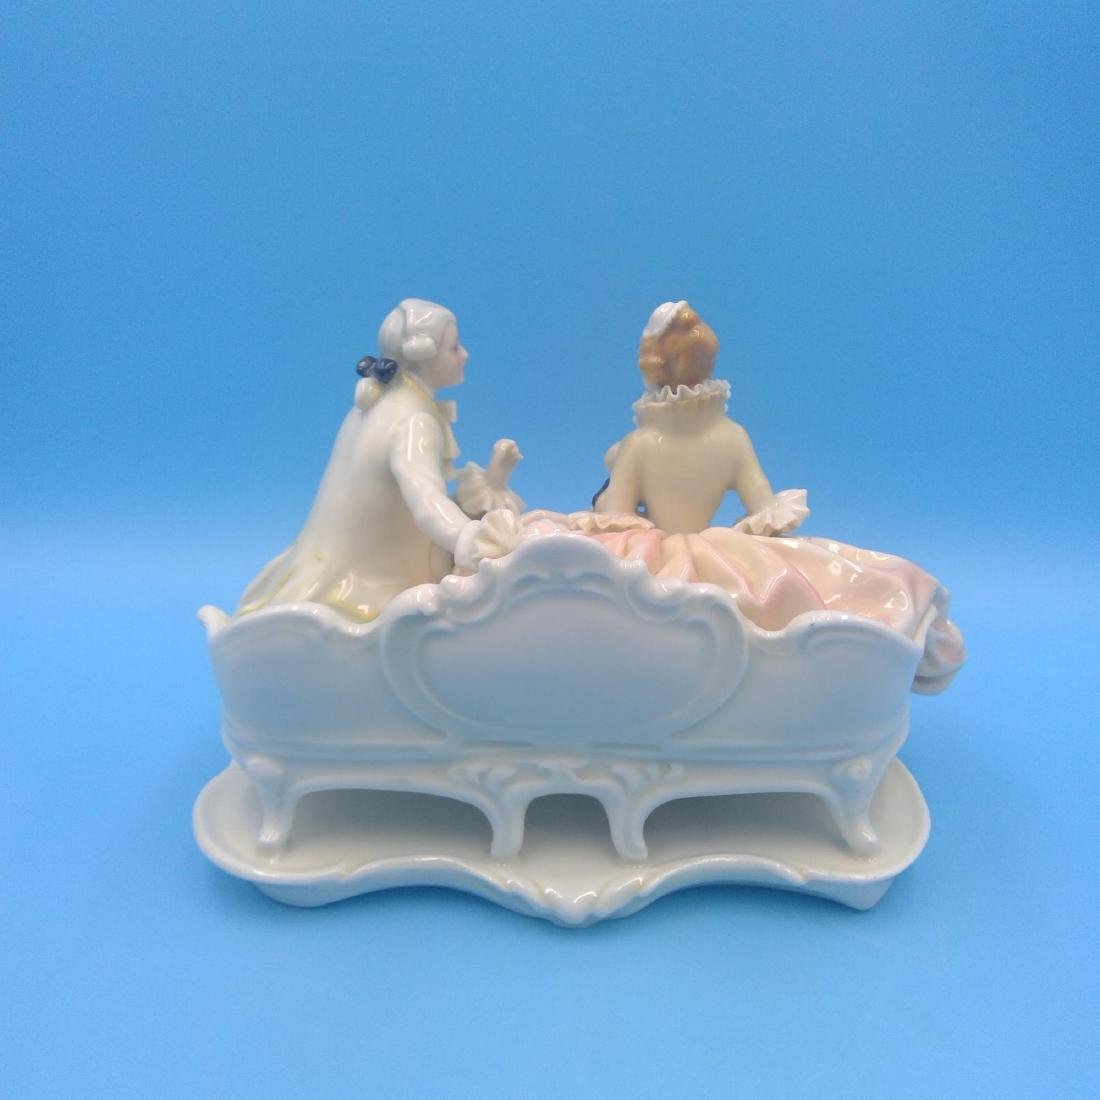 KARL ENS GERMAN PORCELAIN FIGURINE COURTING COUPLE - 3